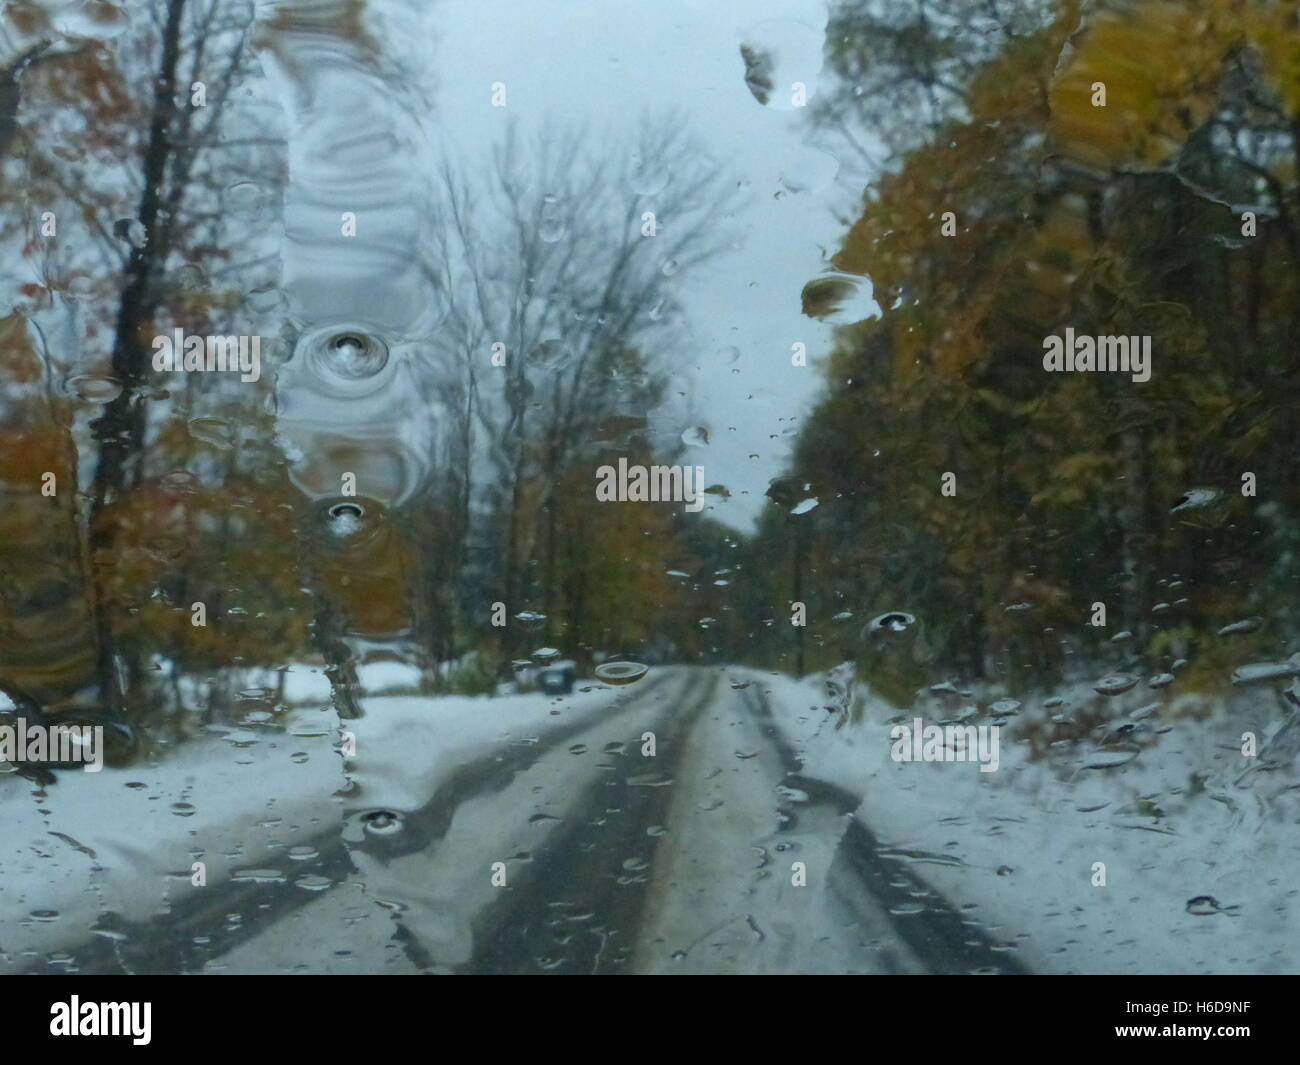 Road during slippery conditions - Stock Image